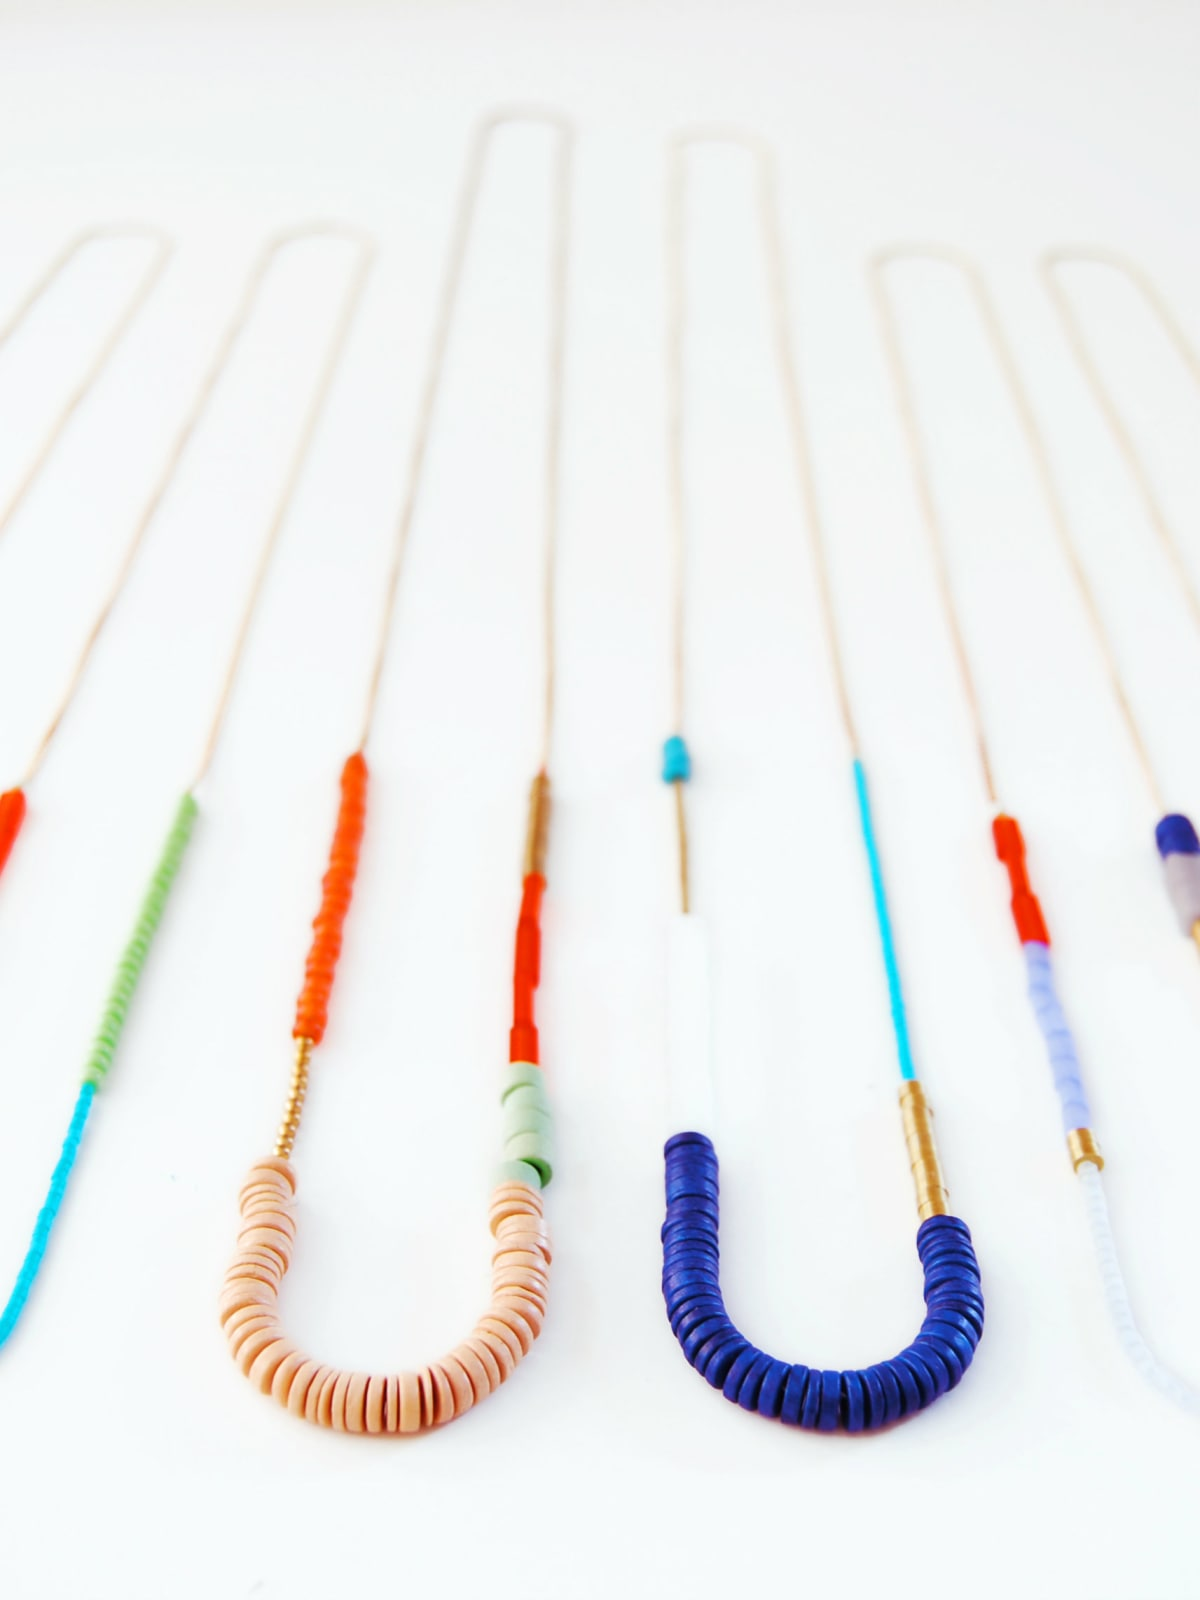 Son of a Sailor jewelry at West Elm